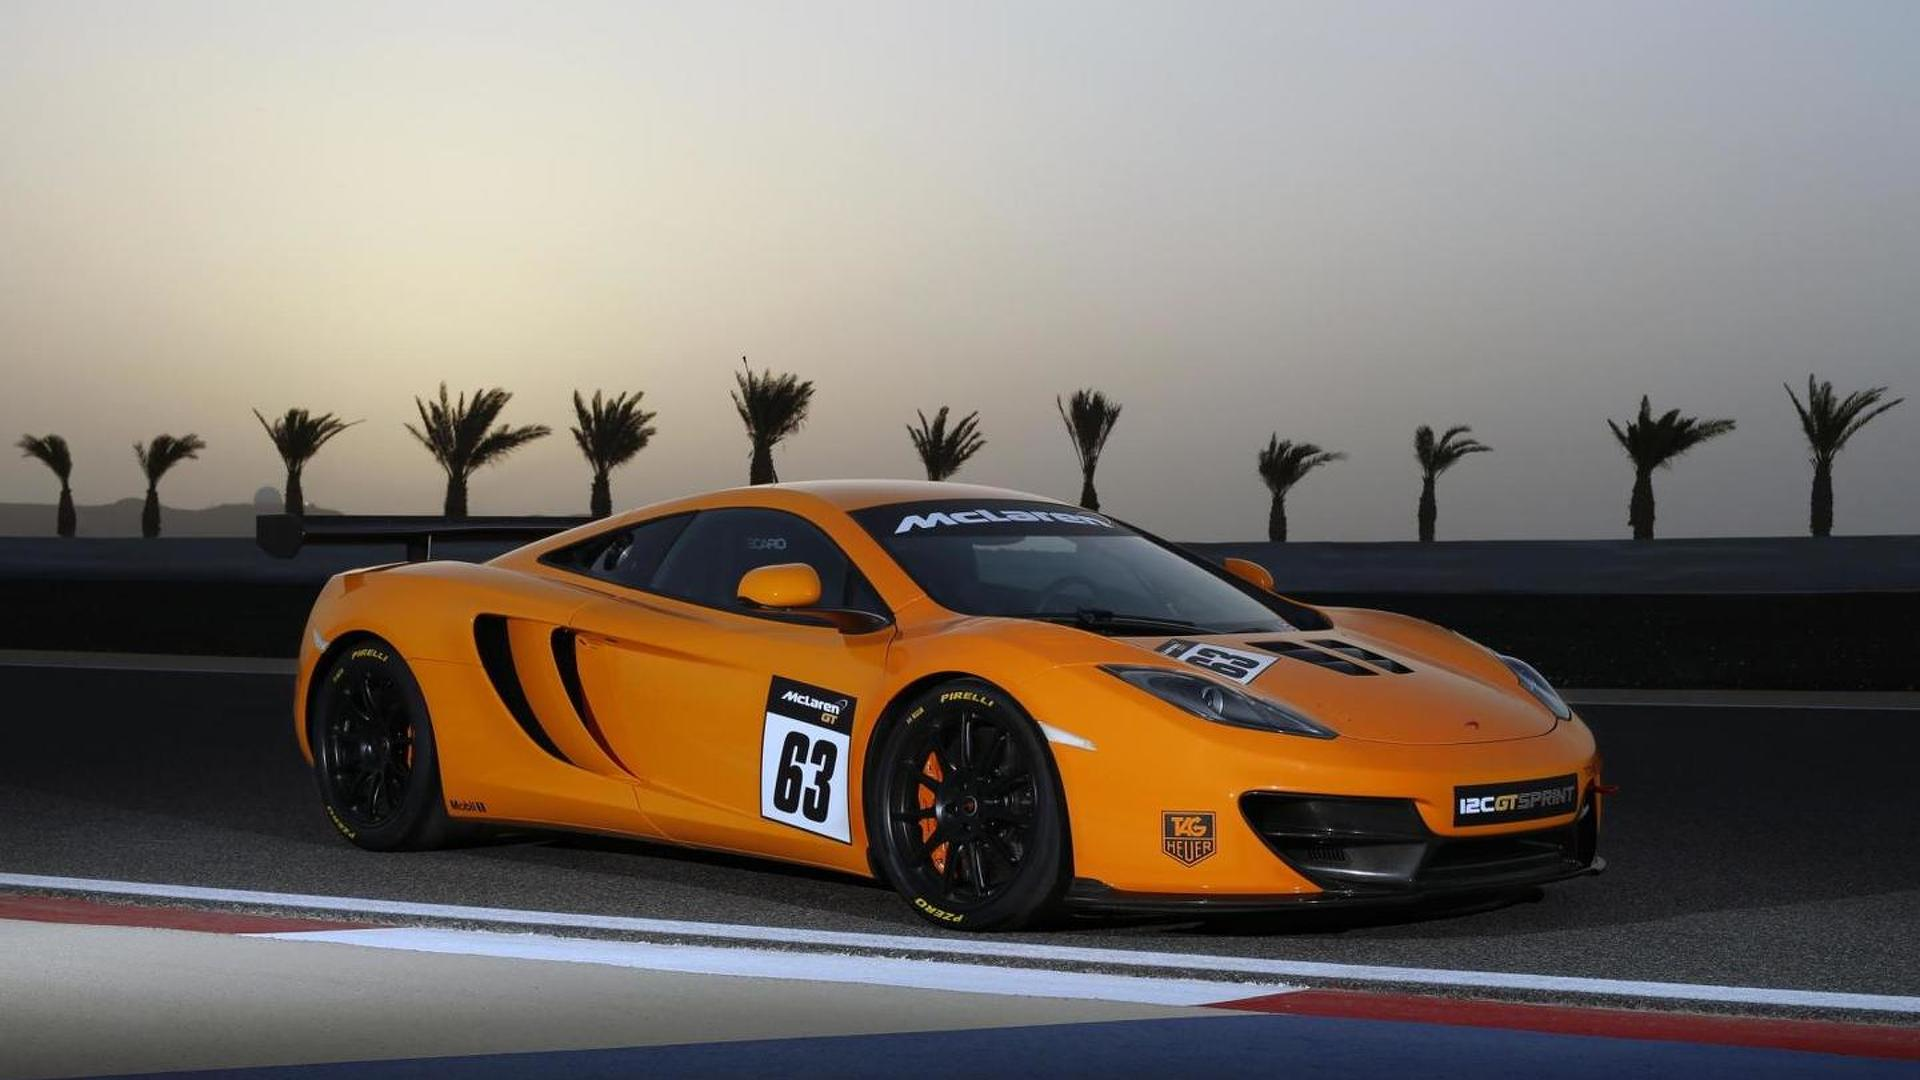 McLaren 12C GT Sprint gets priced & detailed